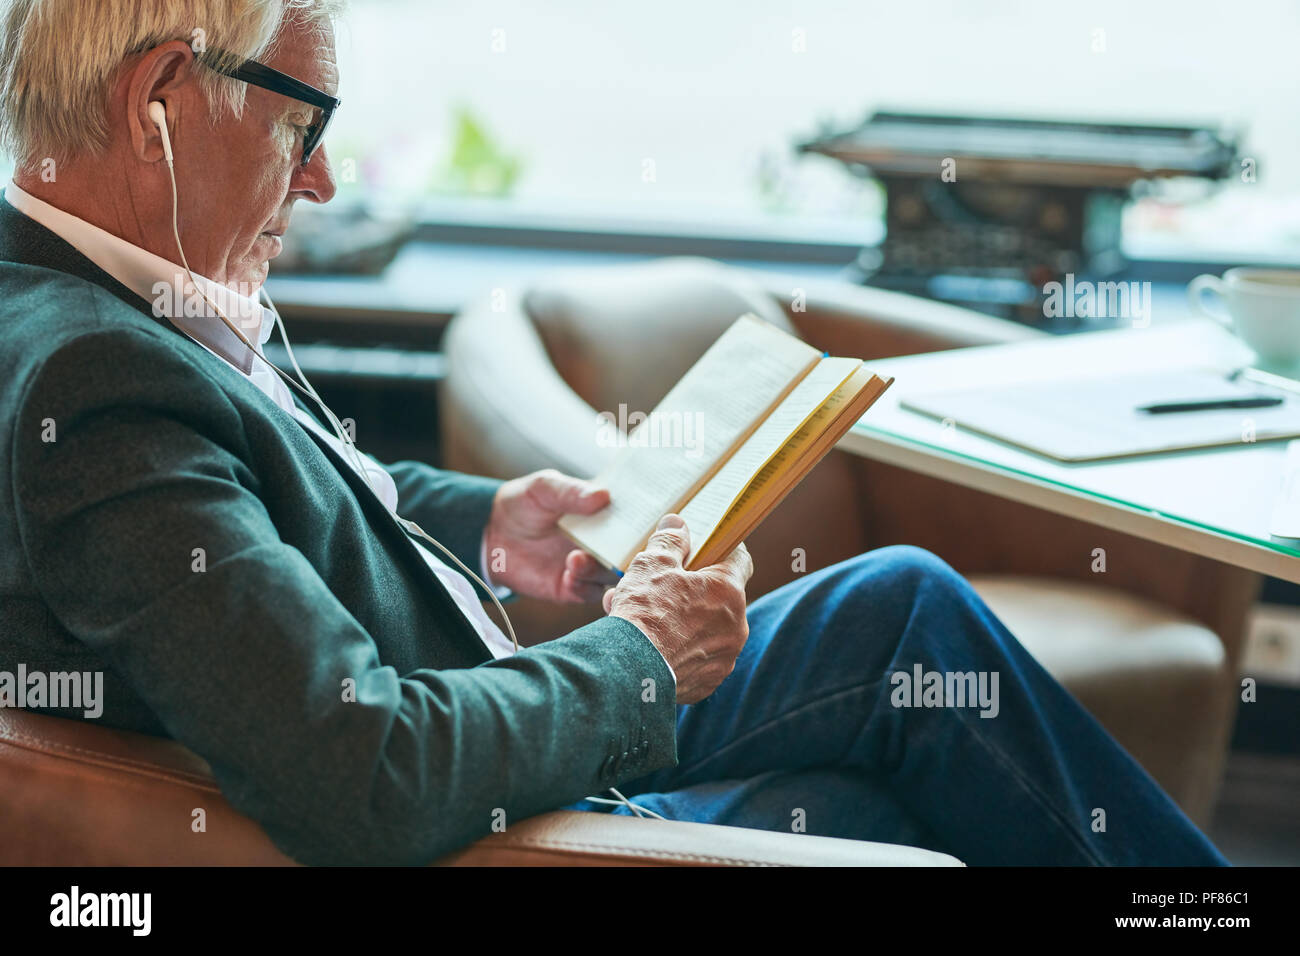 Contemporary Senior Man Reading in Cafe - Stock Image